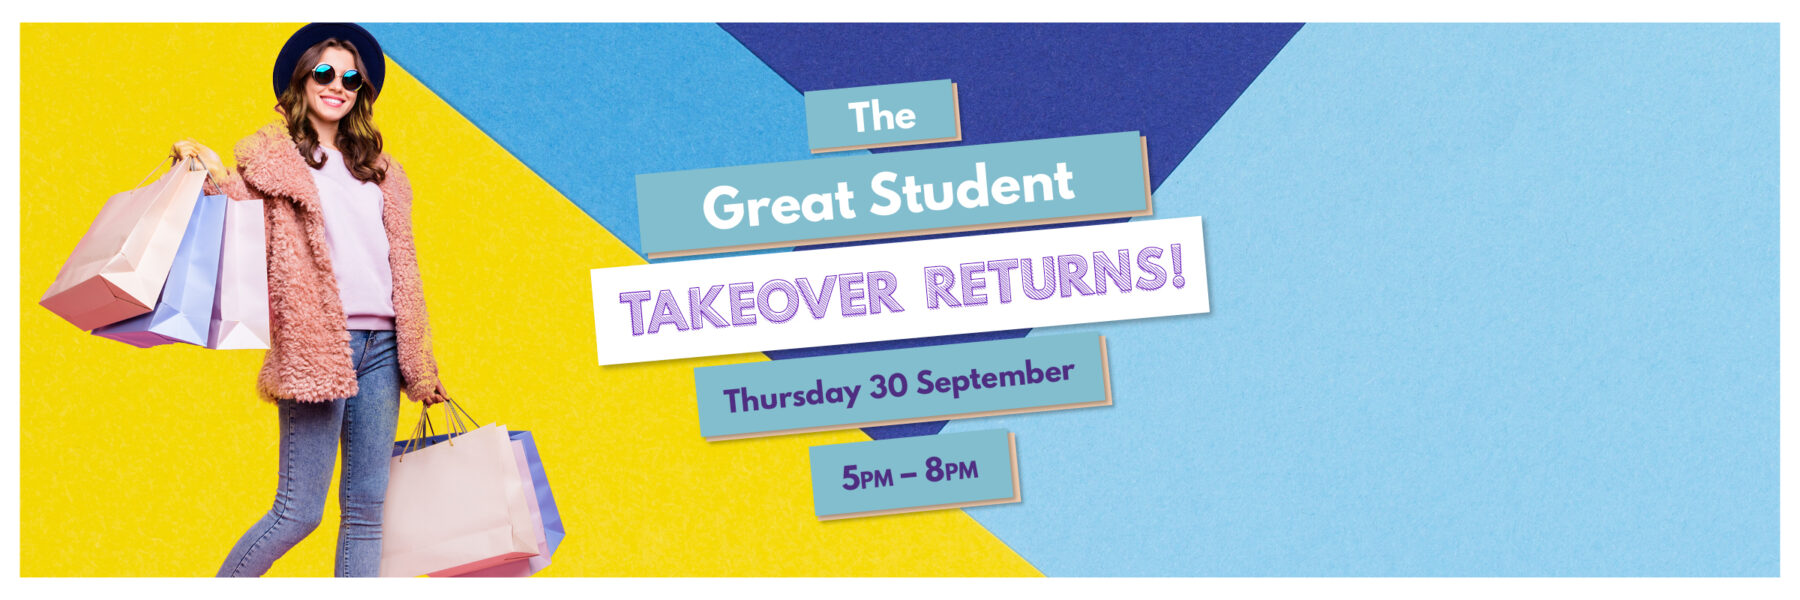 The Great Student Takeover Returns!